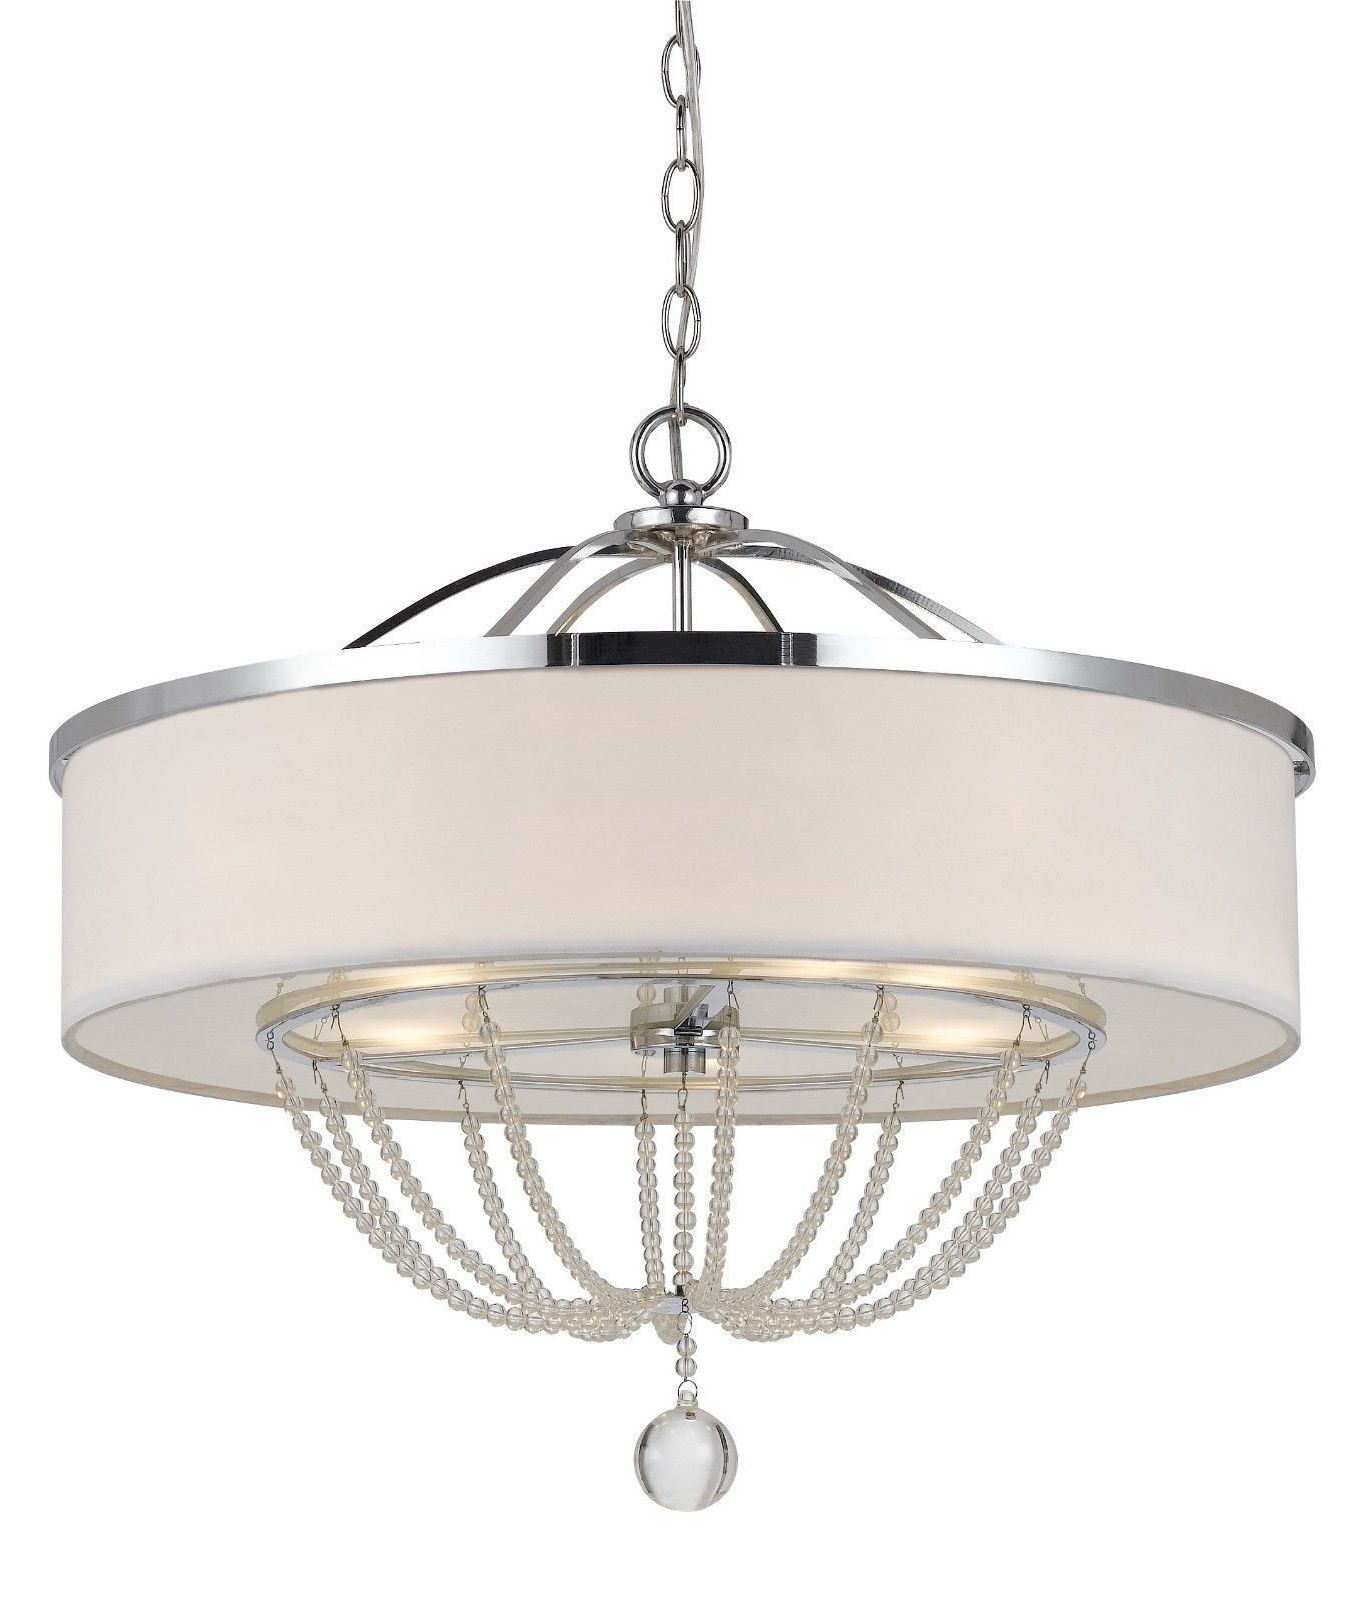 Modern White Fabric With Chrome Metal & Crystals Drum Pendant Light Inside Most Recently Released Metal Drum Chandeliers (View 9 of 15)